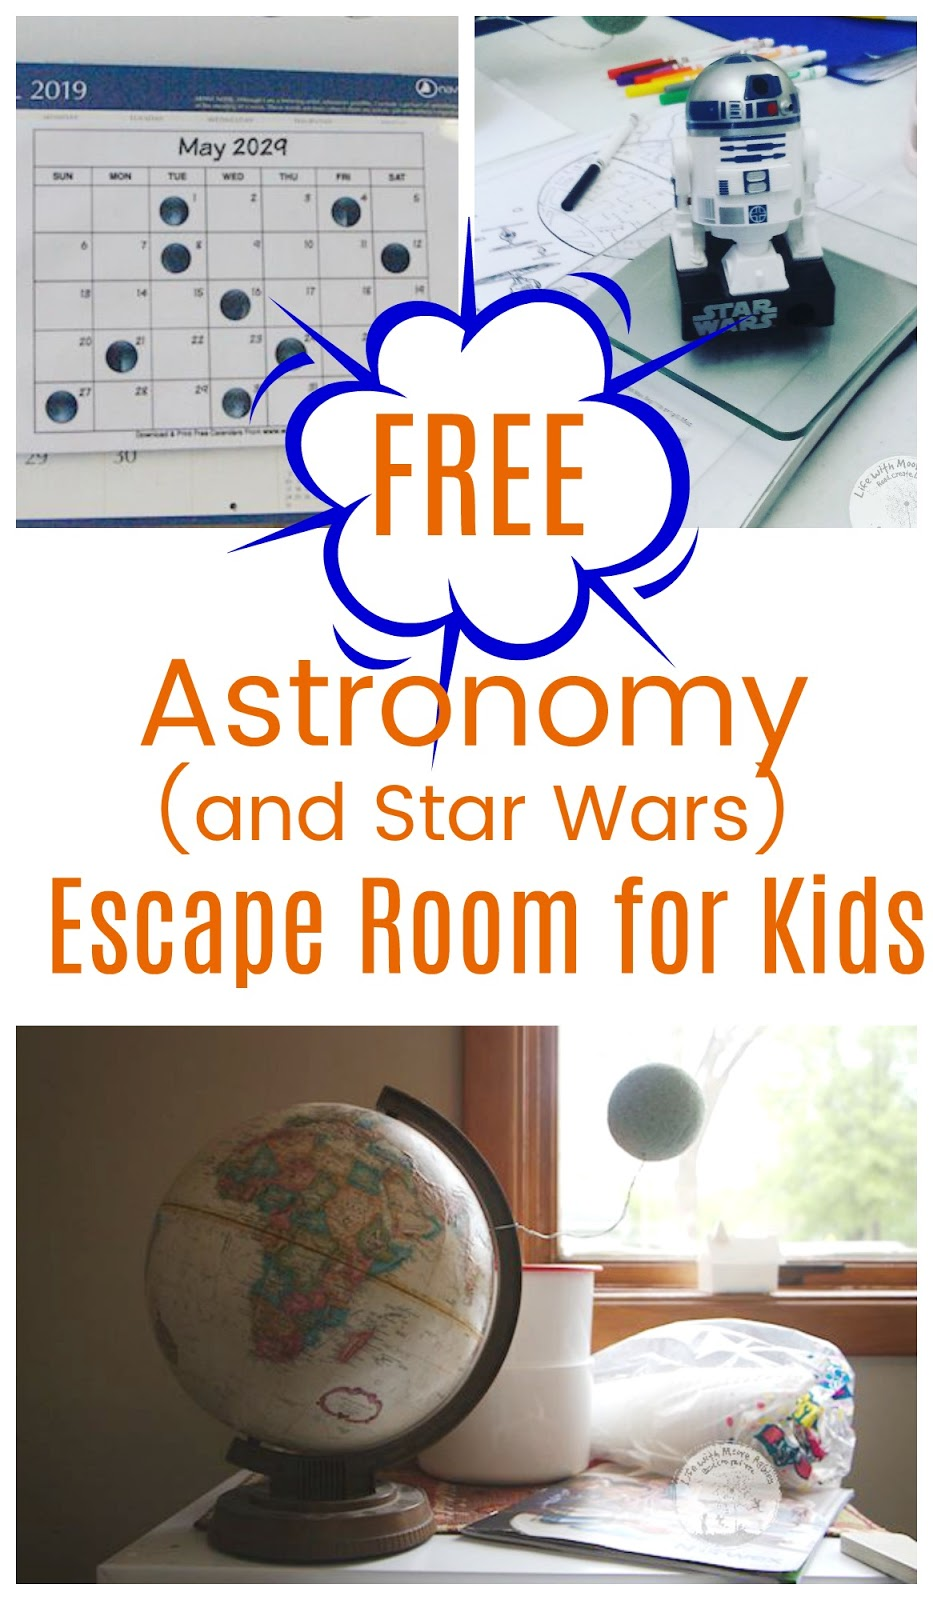 graphic relating to Free Escape Room Printable named How toward Fixed Up an Astronomy Escape House with Cost-free Printables